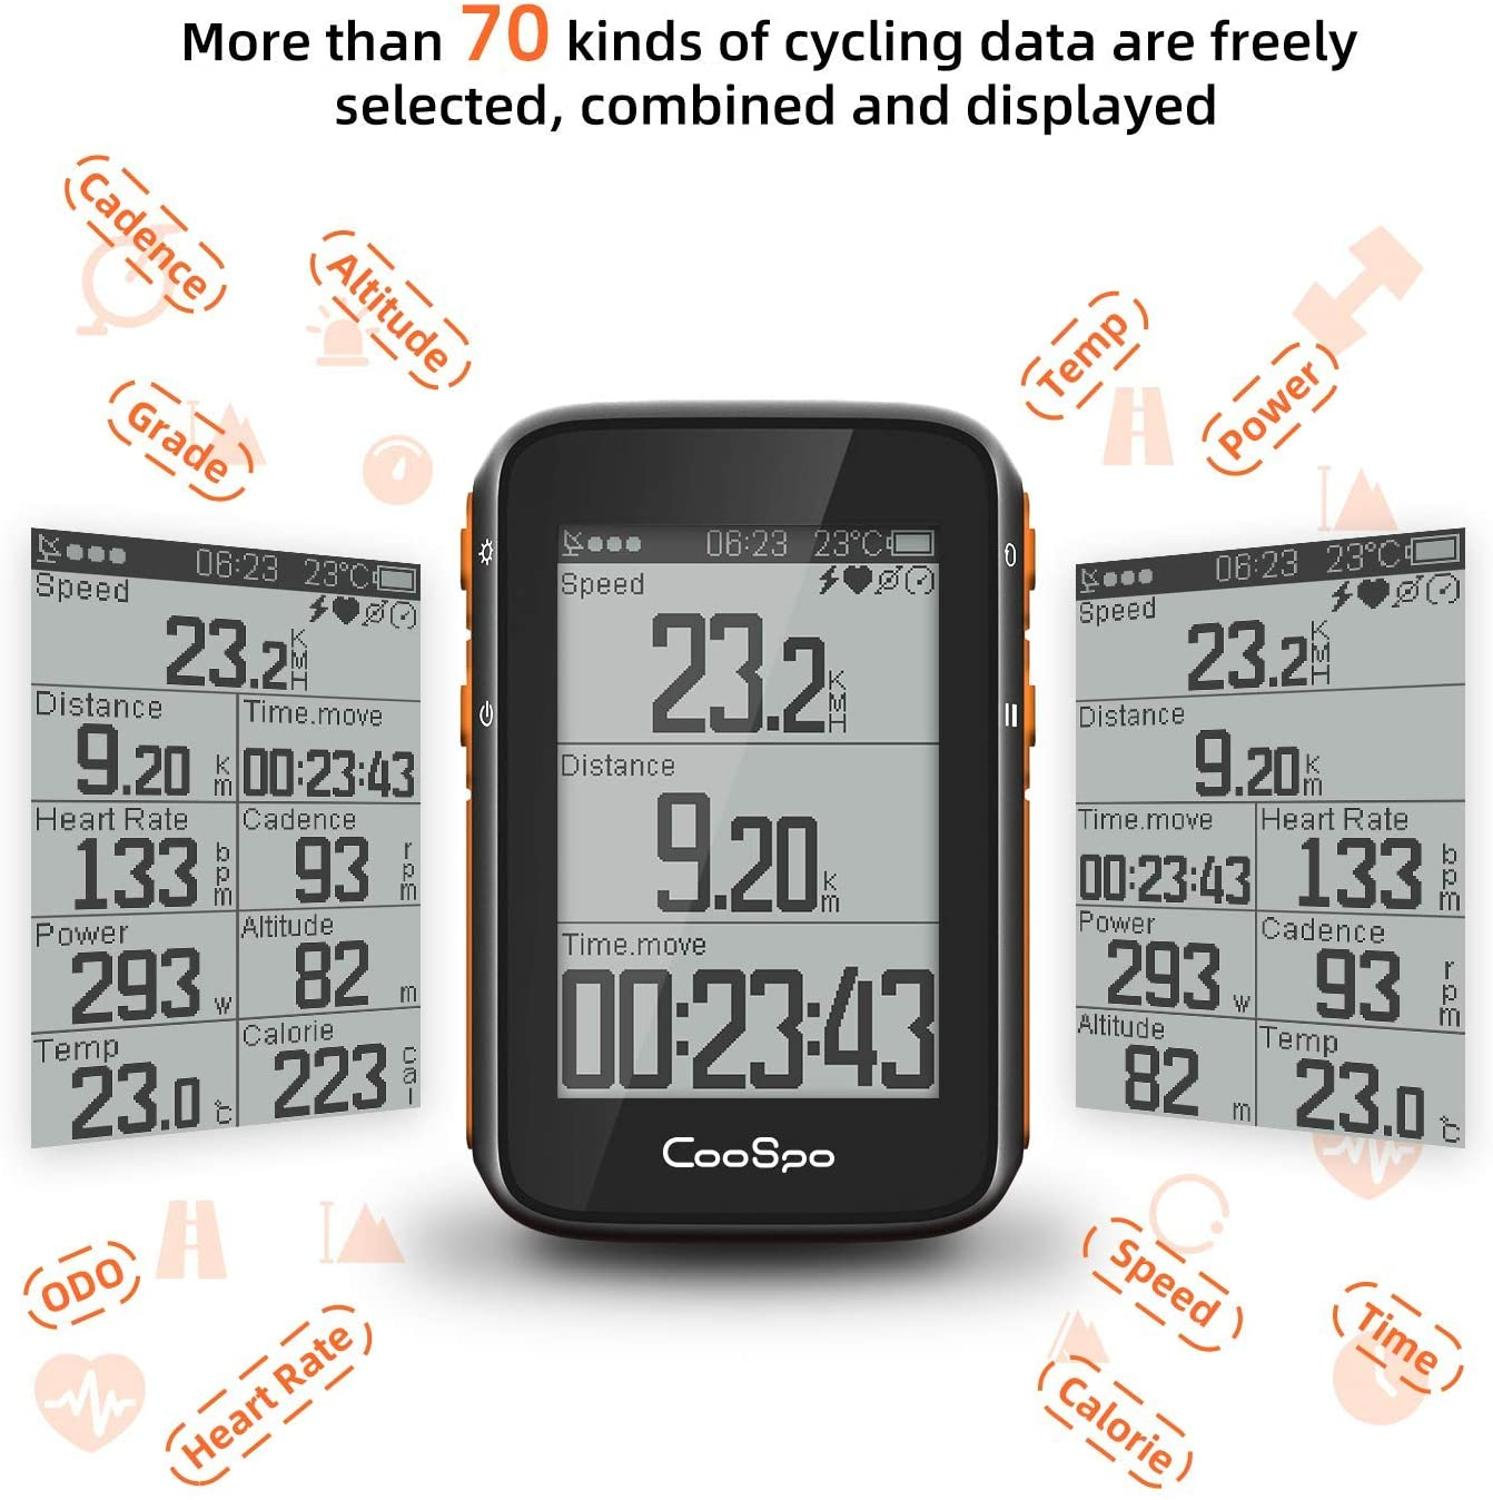 CooSpo Bike Computer GPS Wireless Cycle Speedometer Odometer 2.4 Inch with BLE5.0 ANT+ APP Sync Sensor Waterproof with Bracket-2